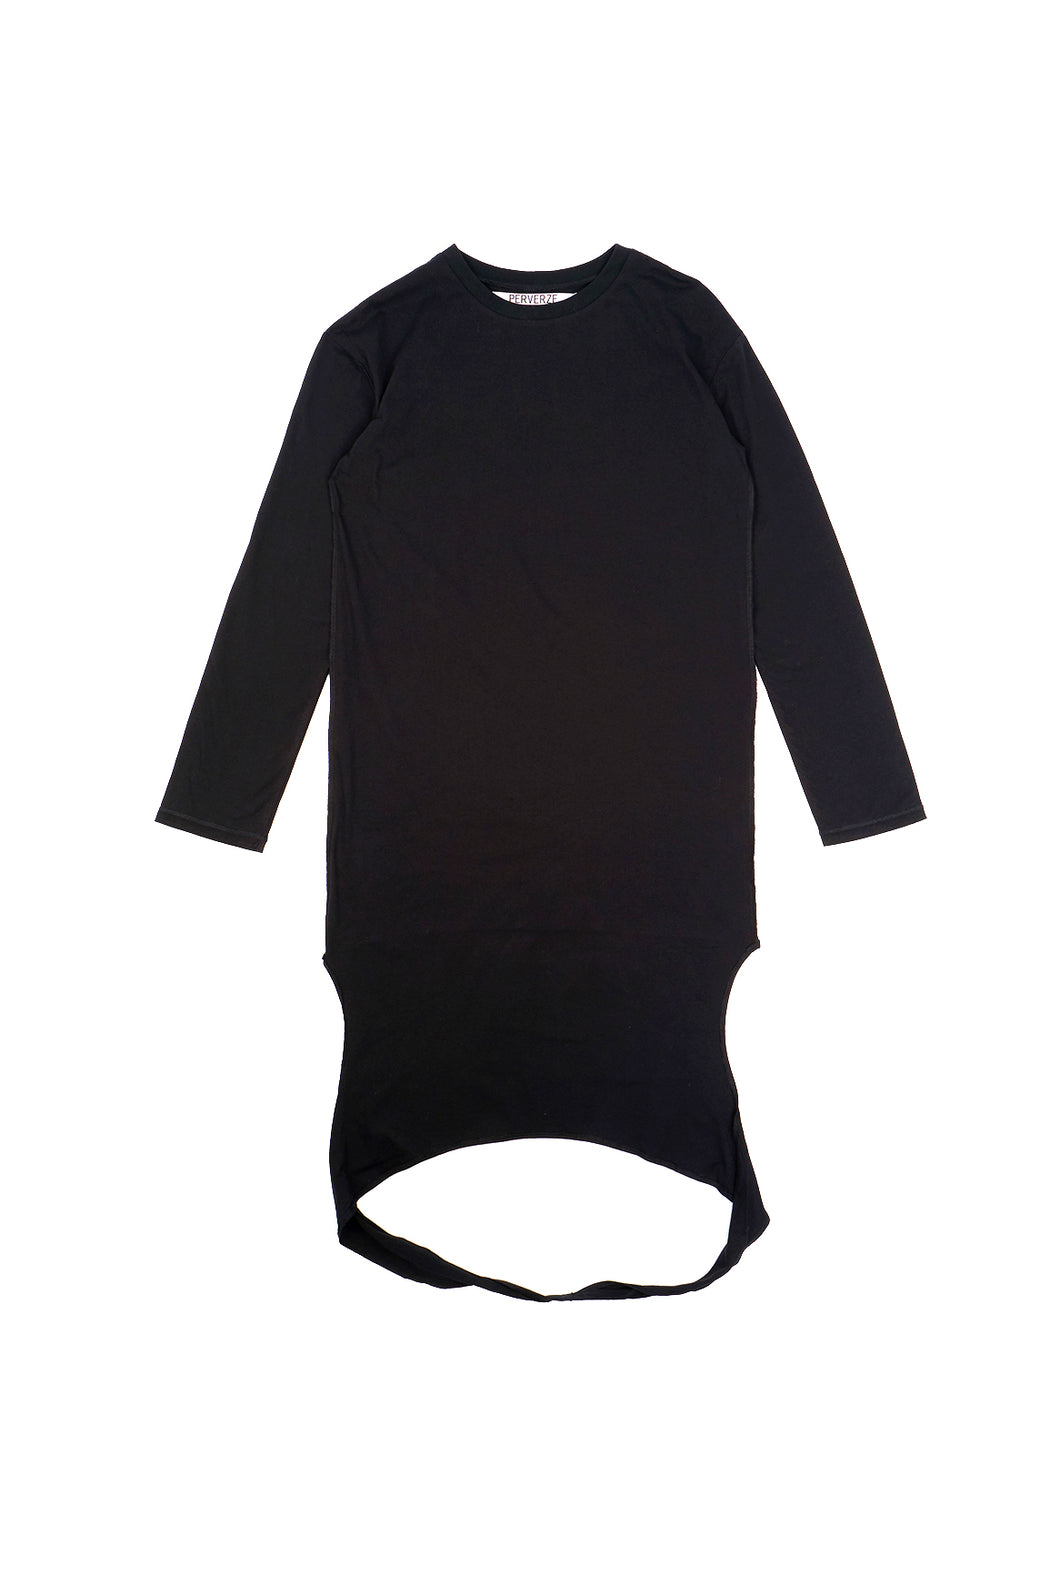 Long Length Tee - Black